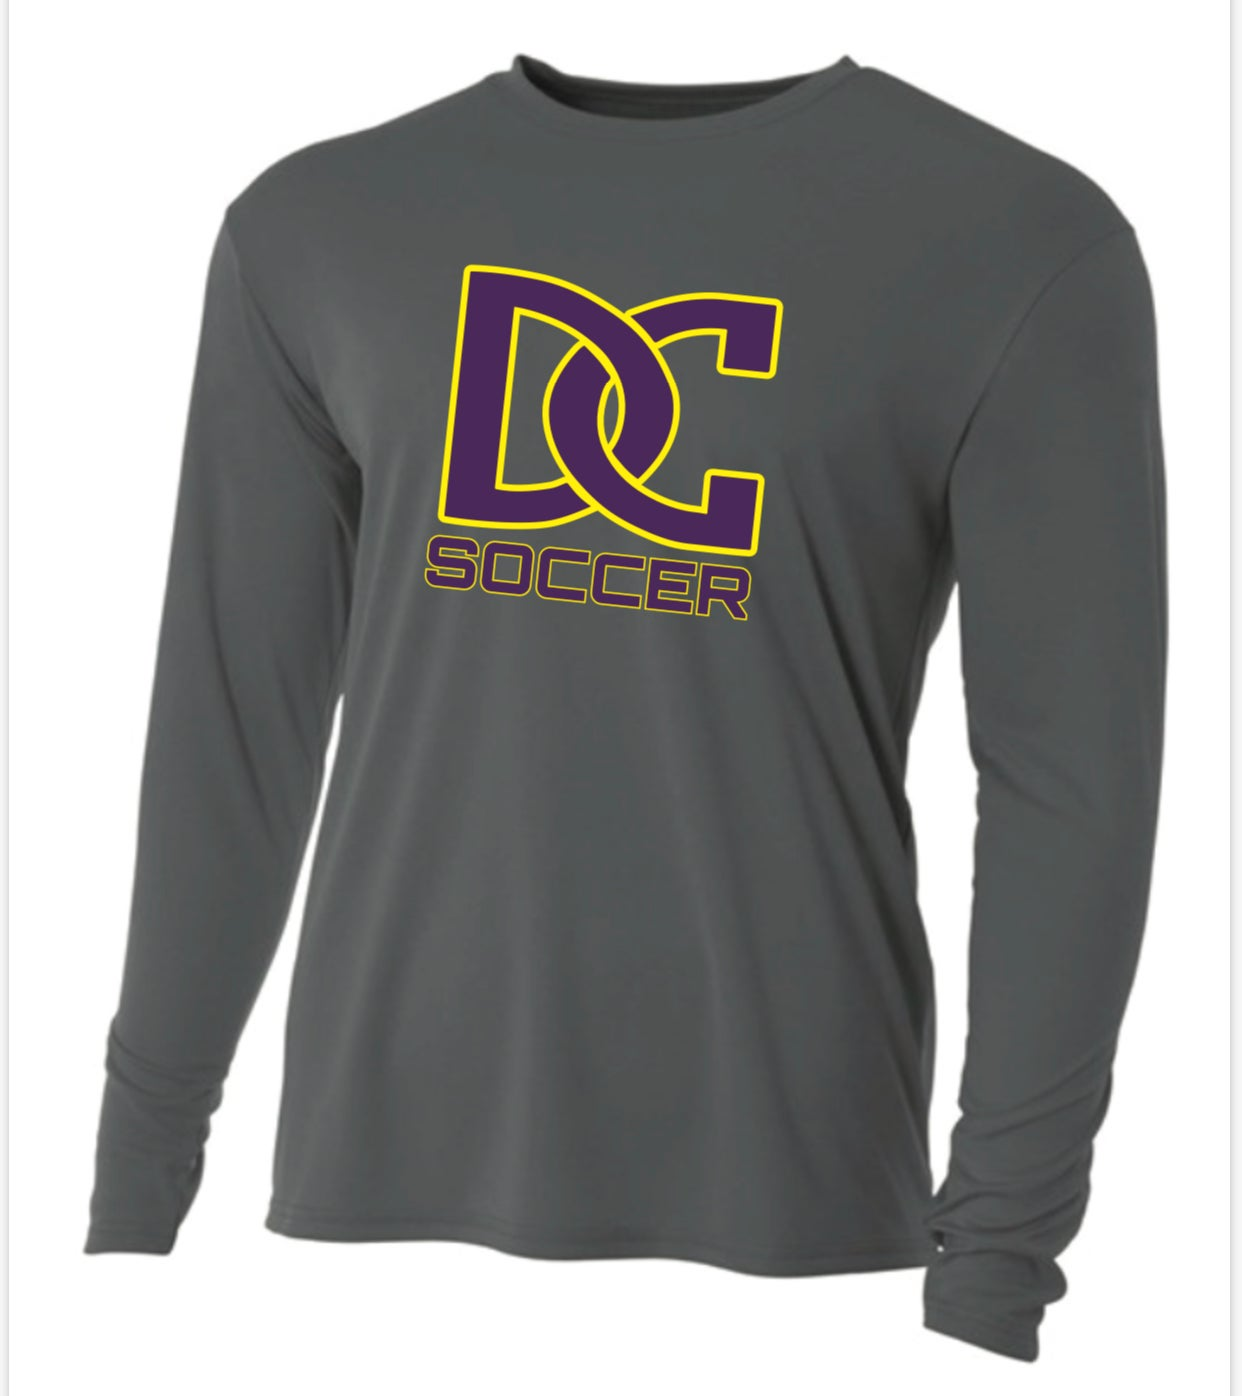 Image of DC SOCCER - A4 Performance Long Sleeve